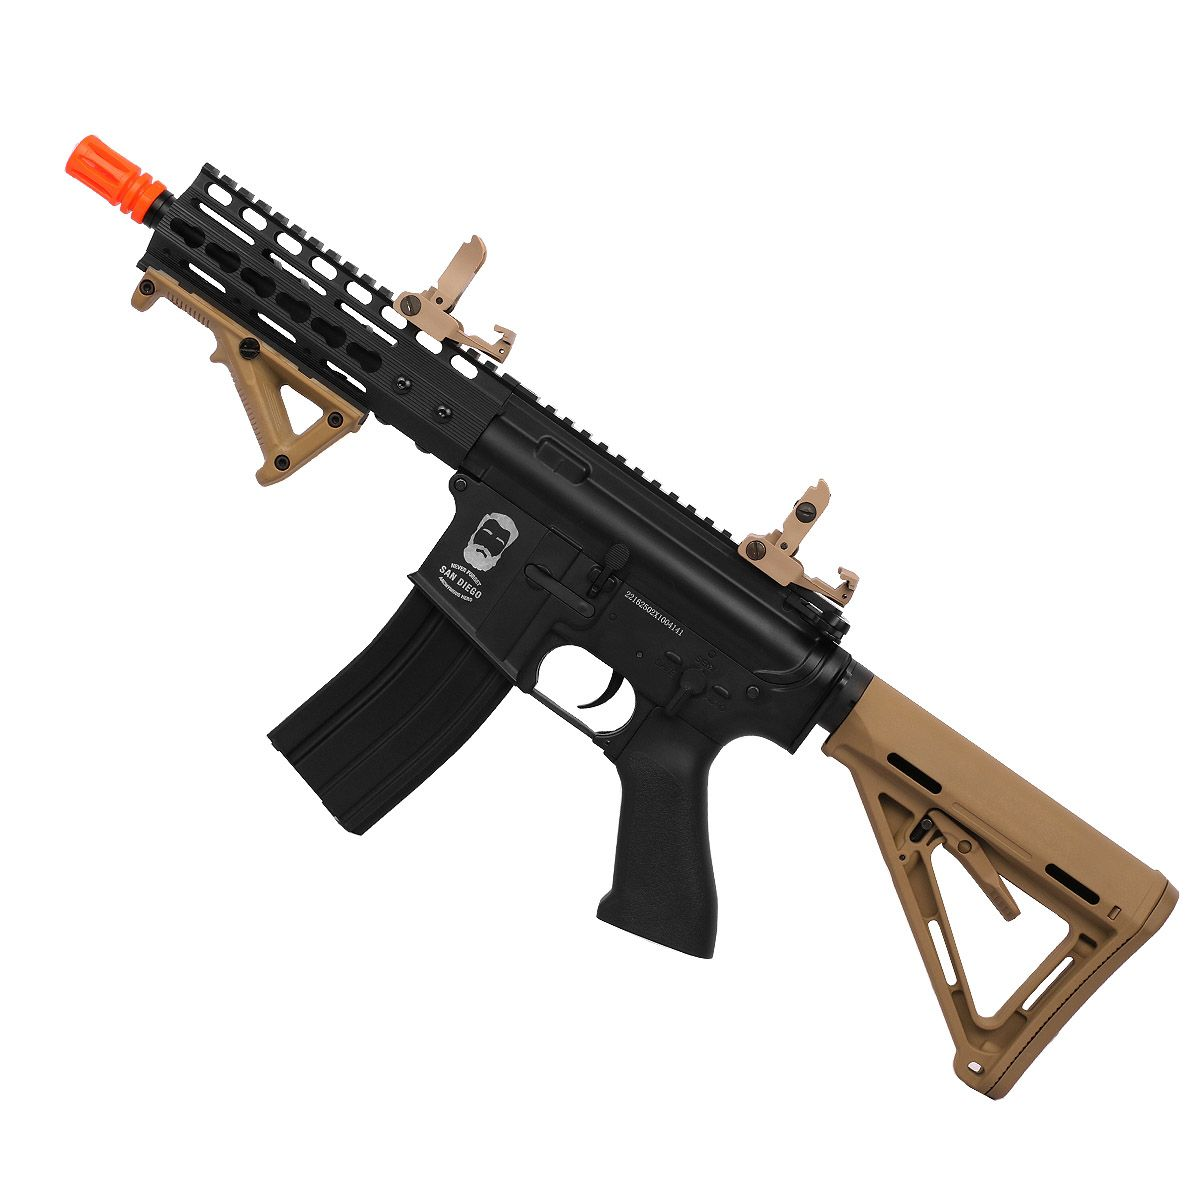 Rifle Airsoft Duel Code San Diego Full Metal - Tan